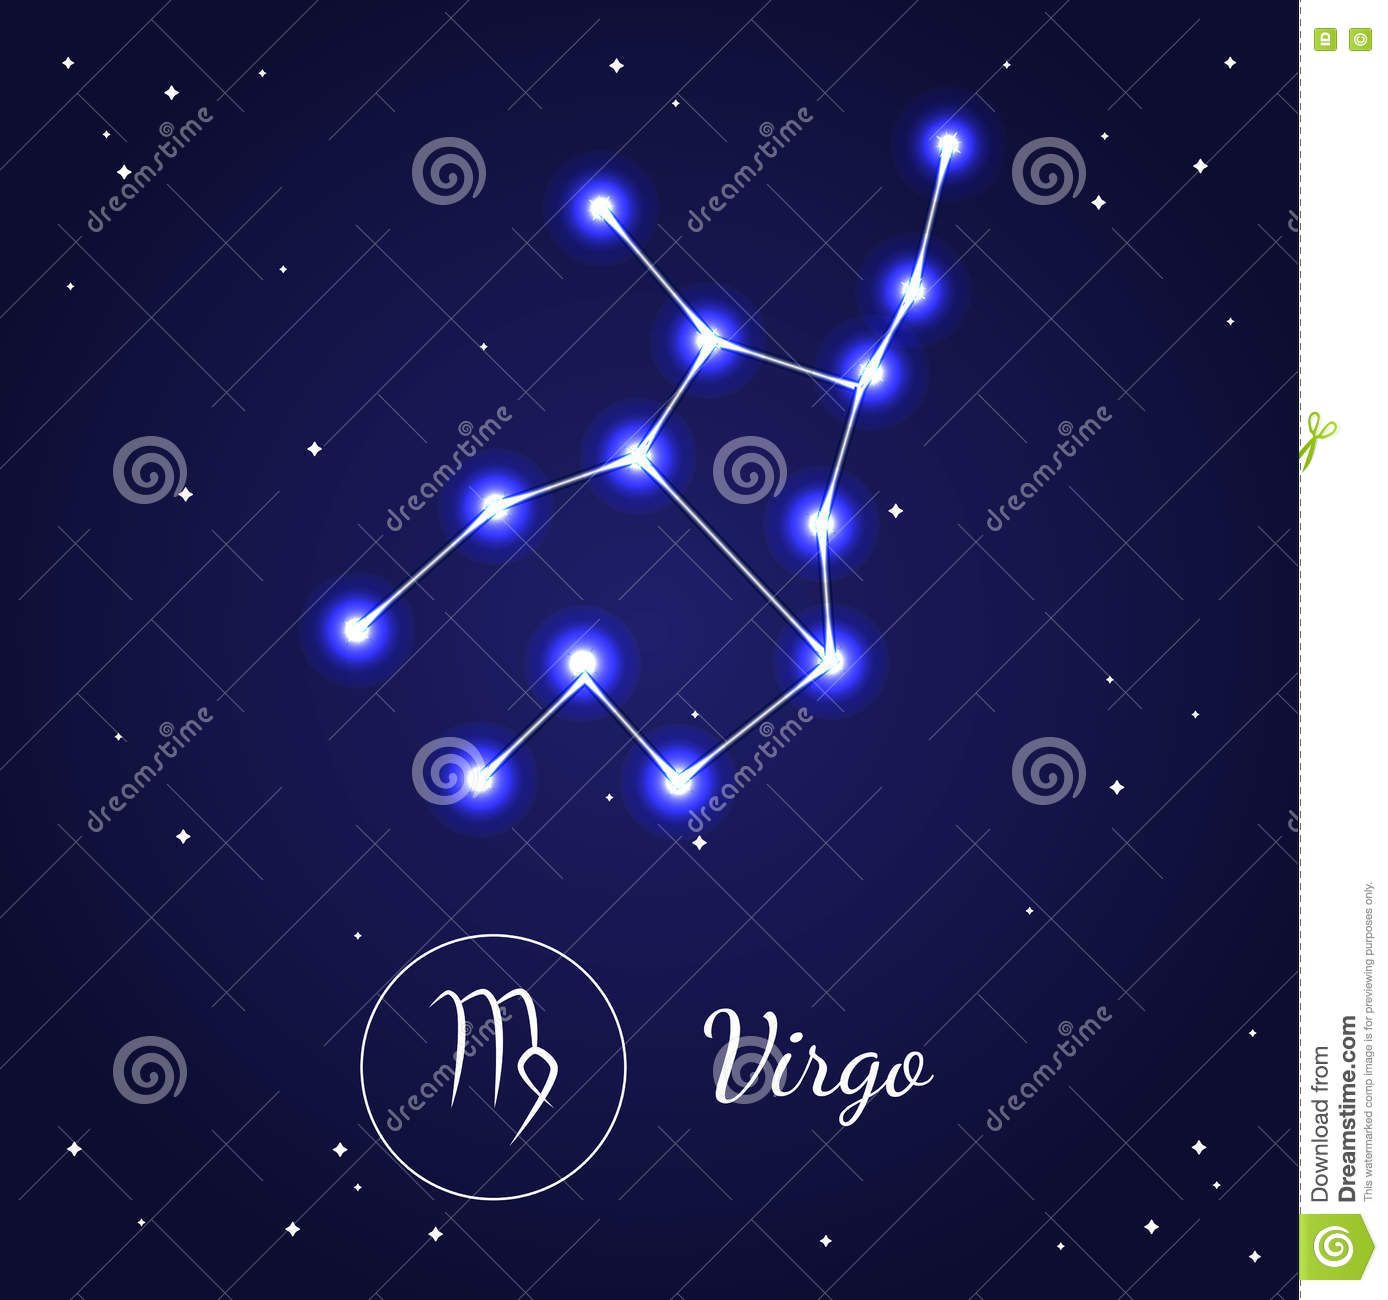 Virgo Zodiac Sign Stars On The Cosmic Sky Vector Stock Vector